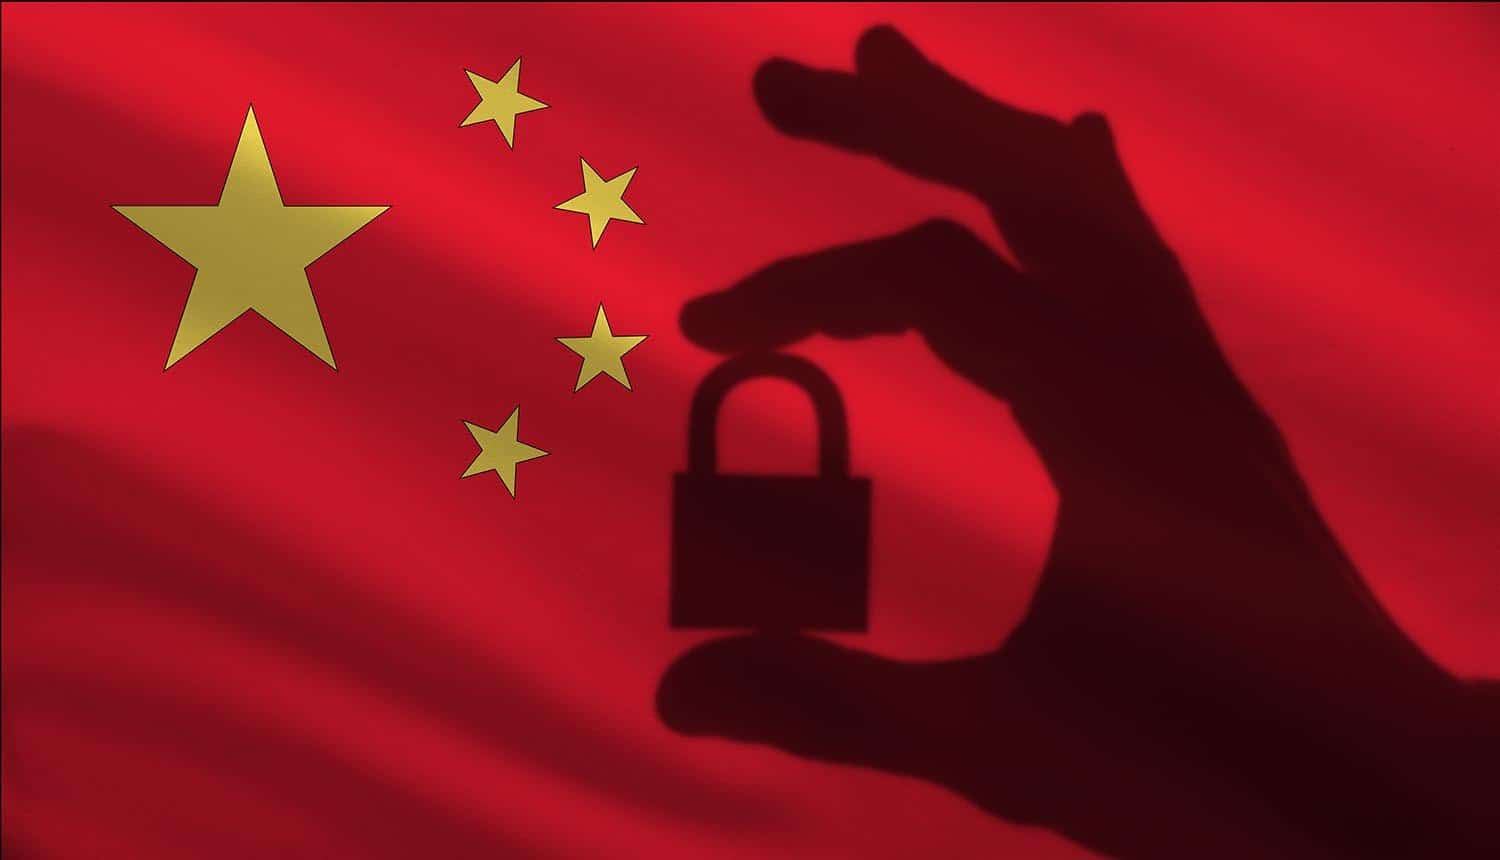 Closed lock in the hand against China flag showing data security law on tech giants